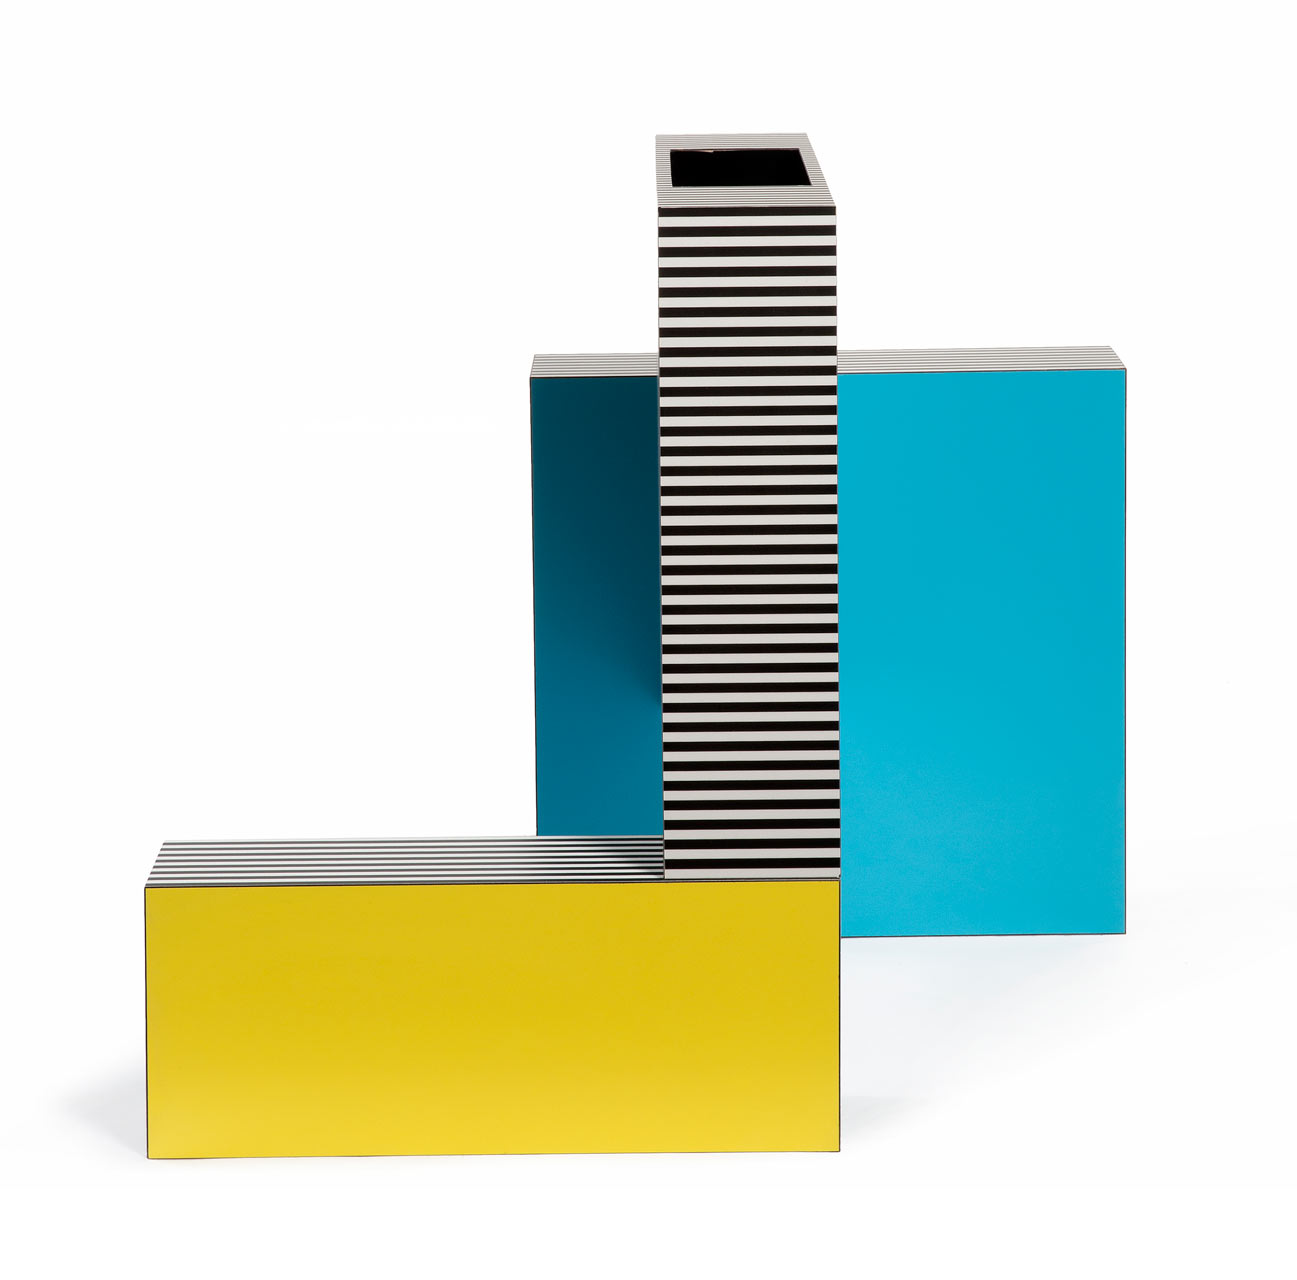 Neo-Laminati-Collection-Kelly-Behun-6-vessel